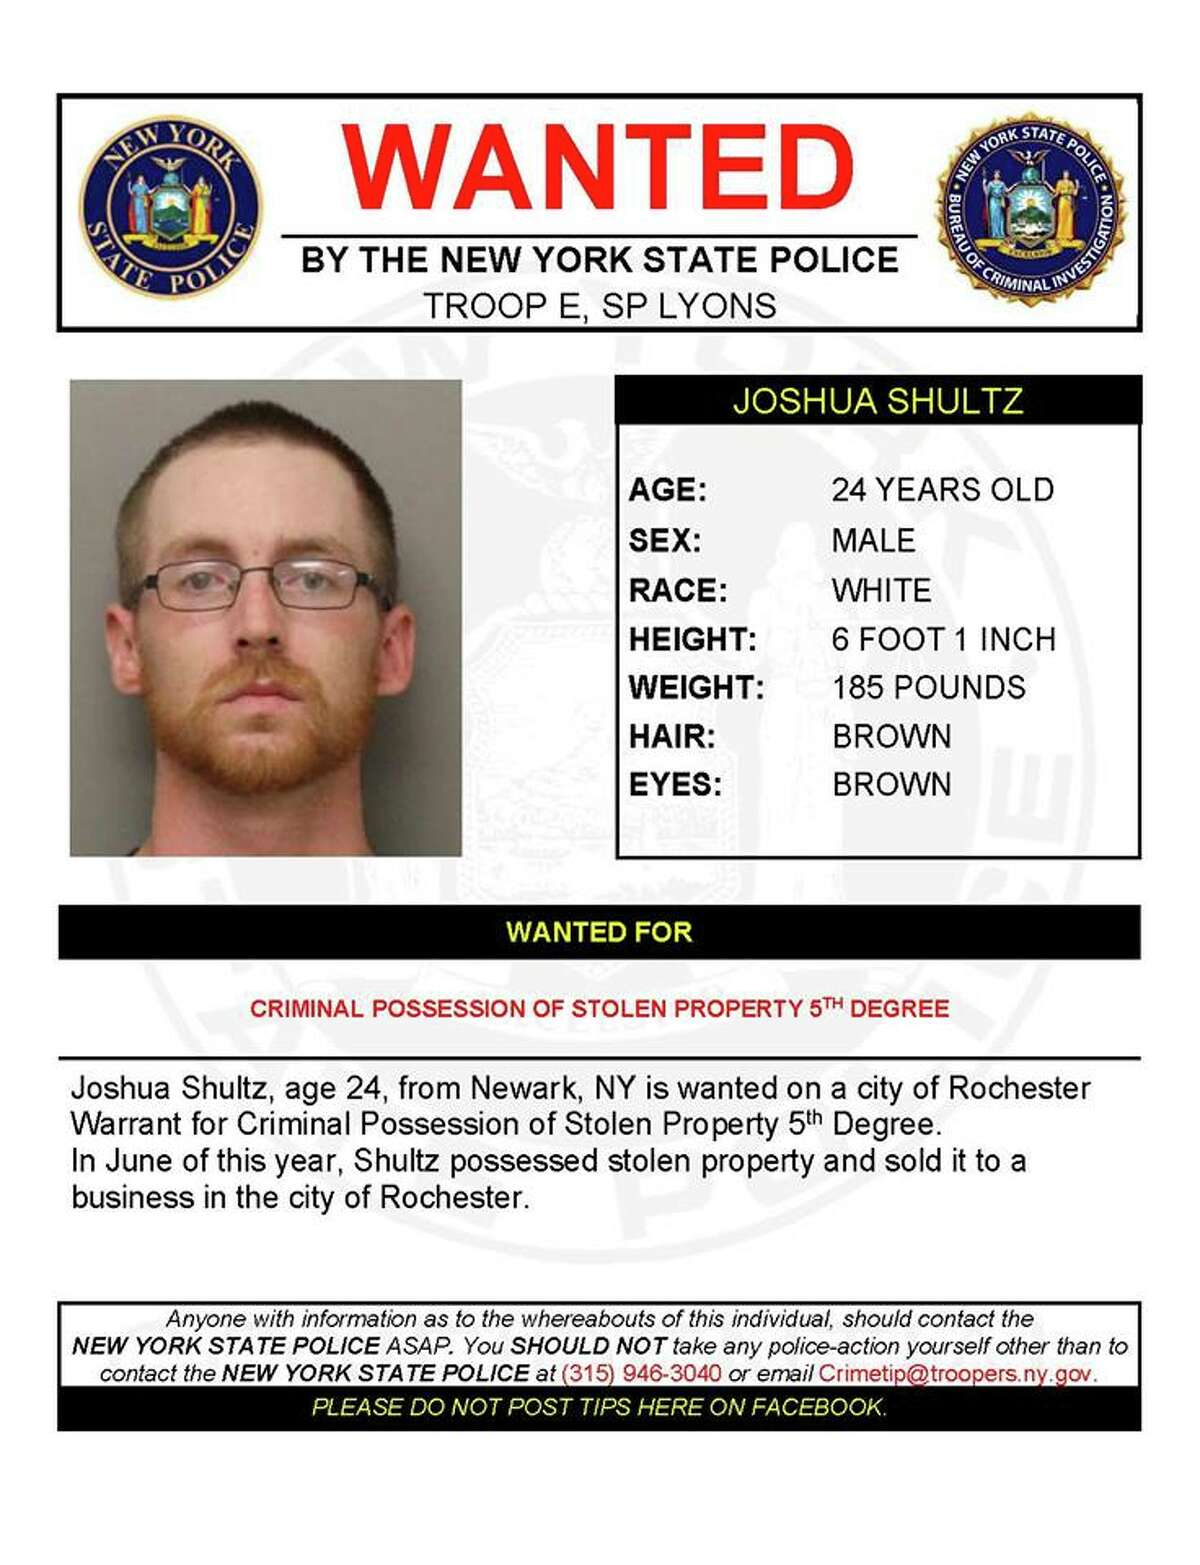 Joshua Shultz, age 24, from Newark, NY is wanted on a city of Rochester Warrant for Criminal Possession of Stolen Property 5th Degree. In June of this year, Shultz possessed stolen property and sold it to a business in the city of Rochester.